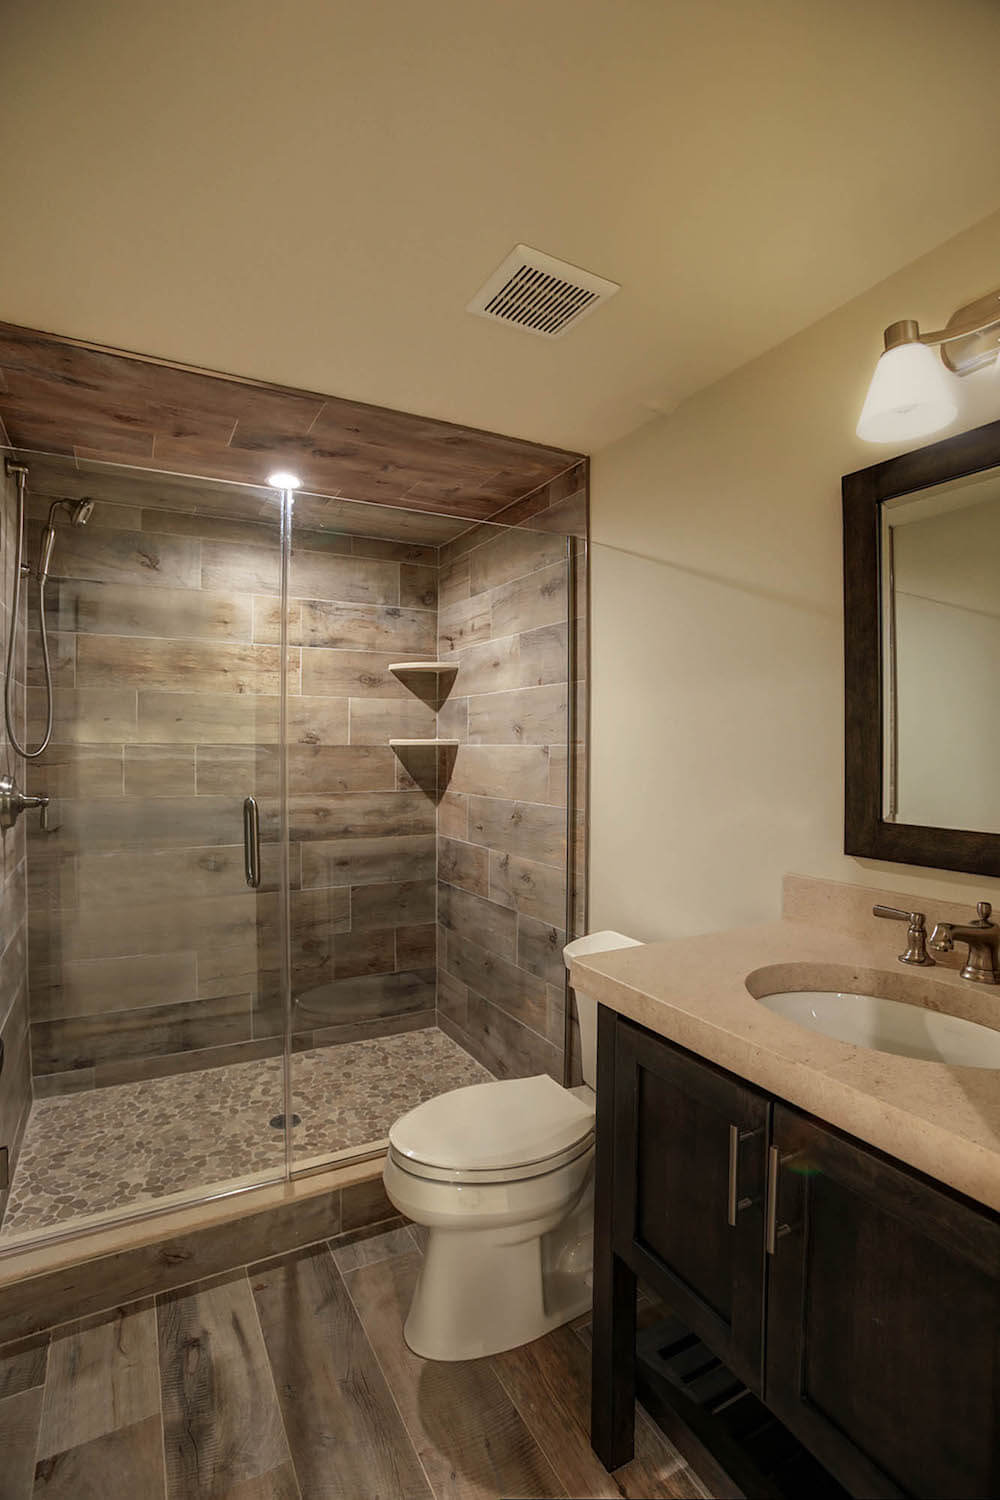 2019 basement remodeling costs basement finishing cost - Basement bathroom cost calculator ...